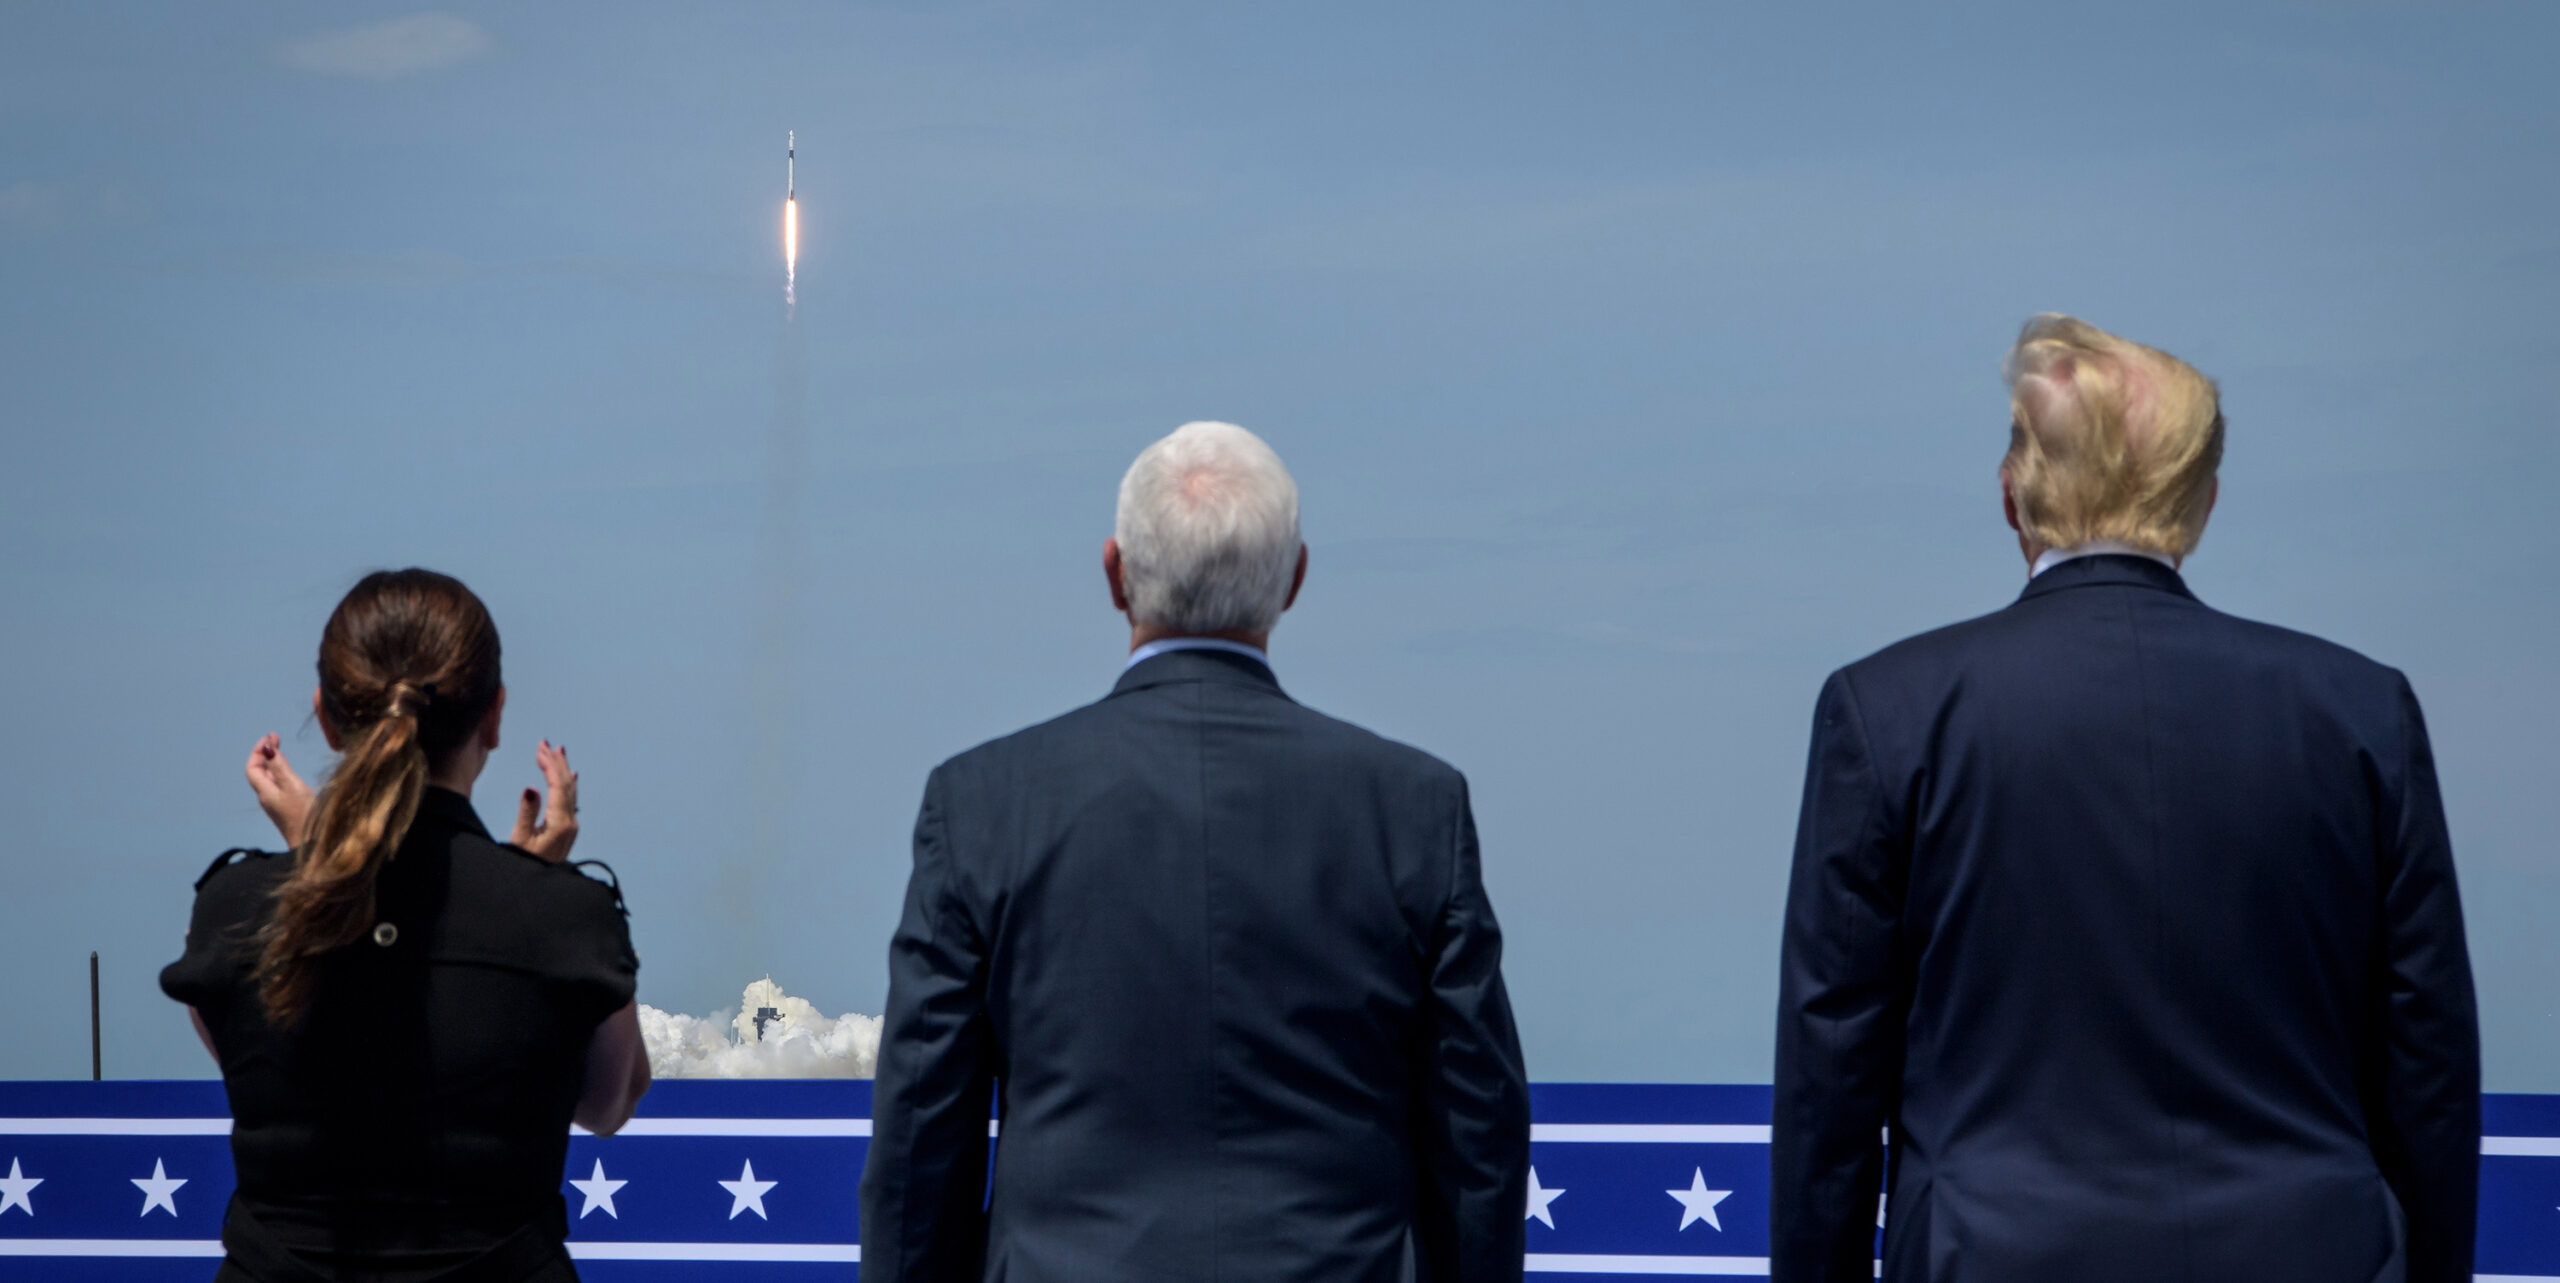 We need to shield the US space program from election cycle chaos